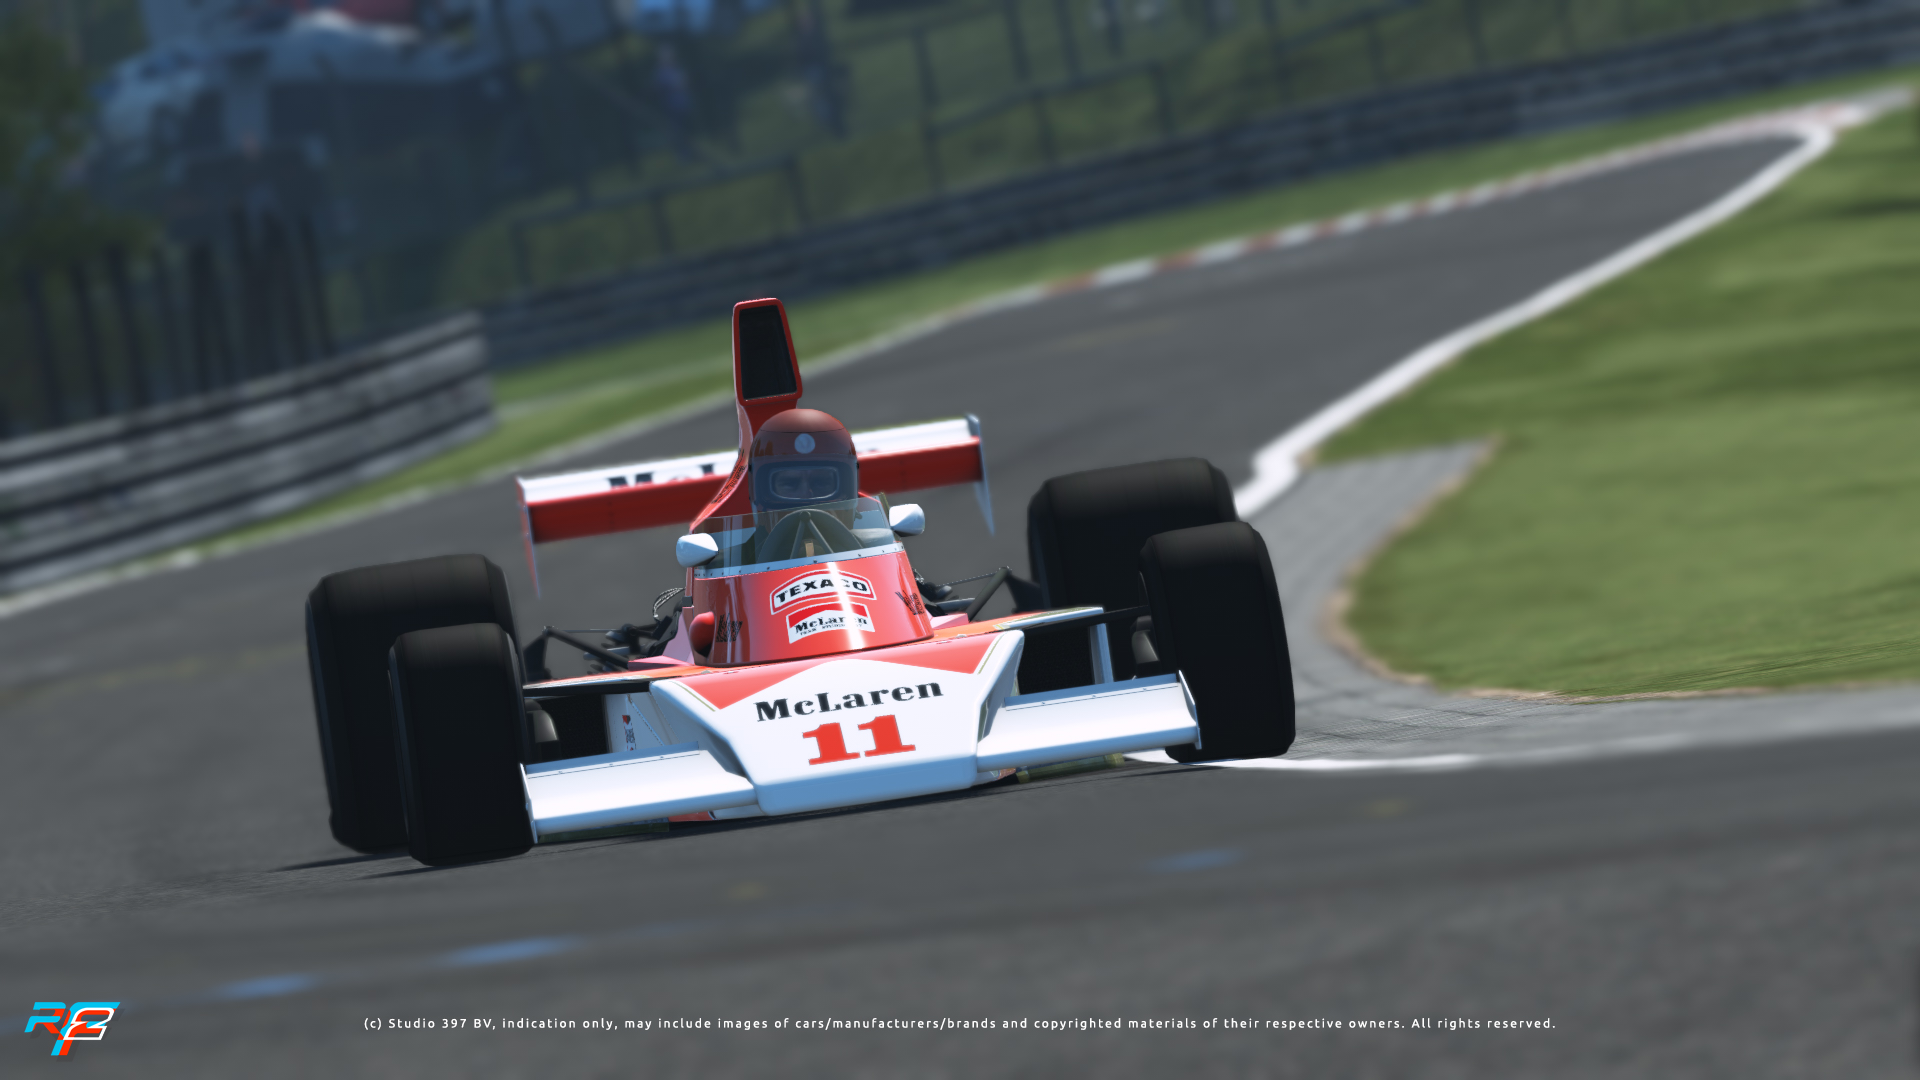 McLaren_M23_pbr_screenshot_02.jpg